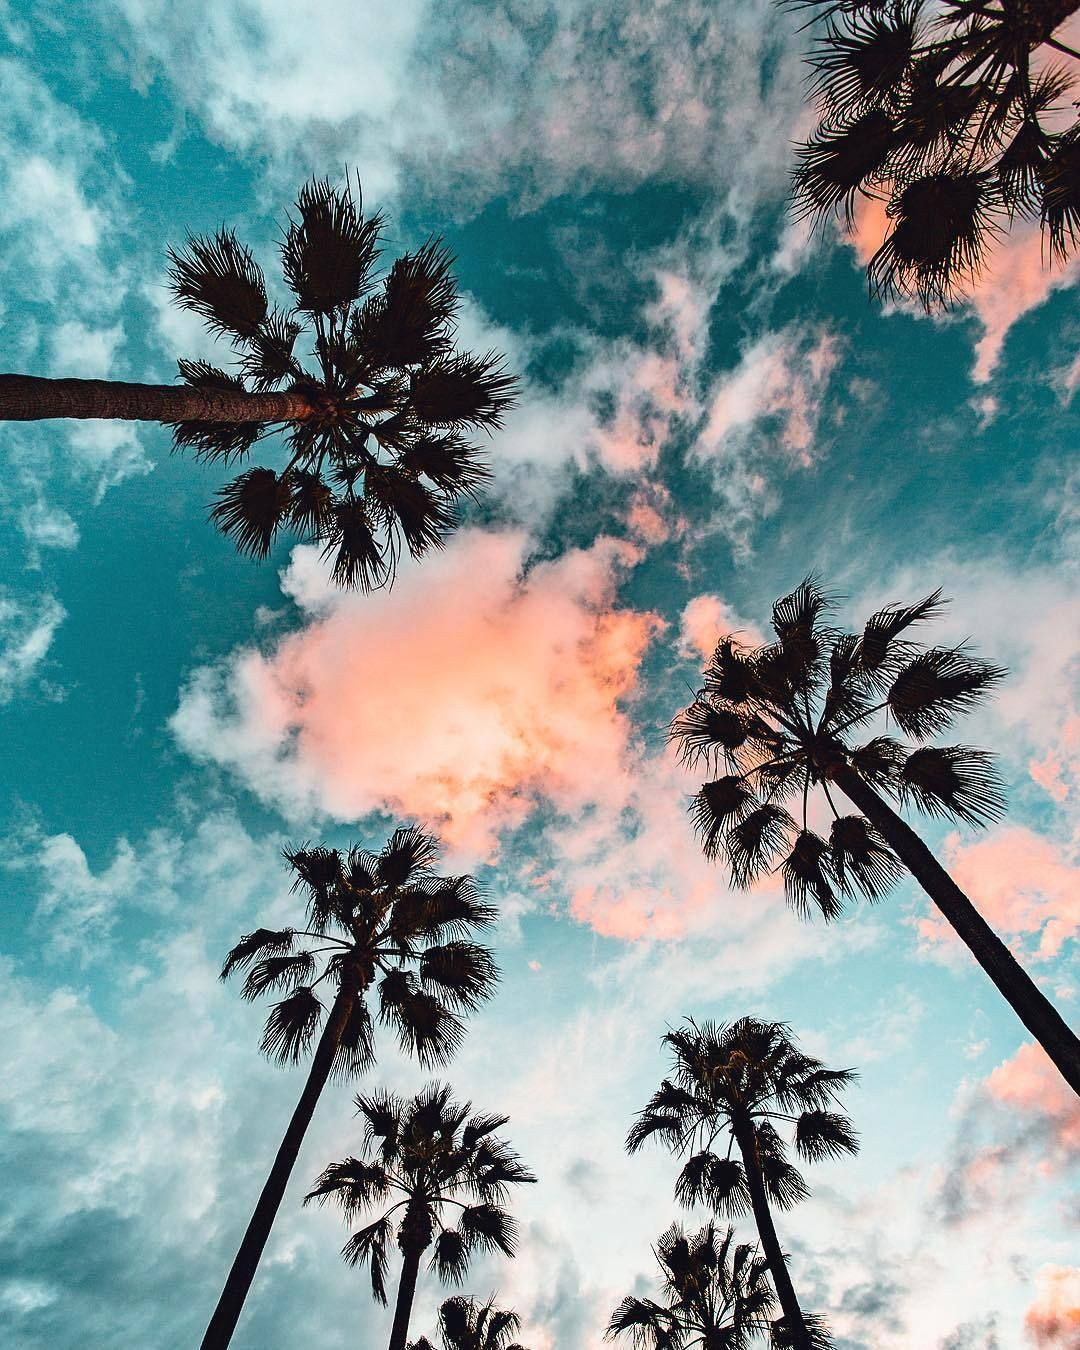 Long Beach California Best Beaches In The World Island Life Beach Vibes Sand Beach Islandvibes Islandlif Nature Photography Aesthetic Wallpapers Nature